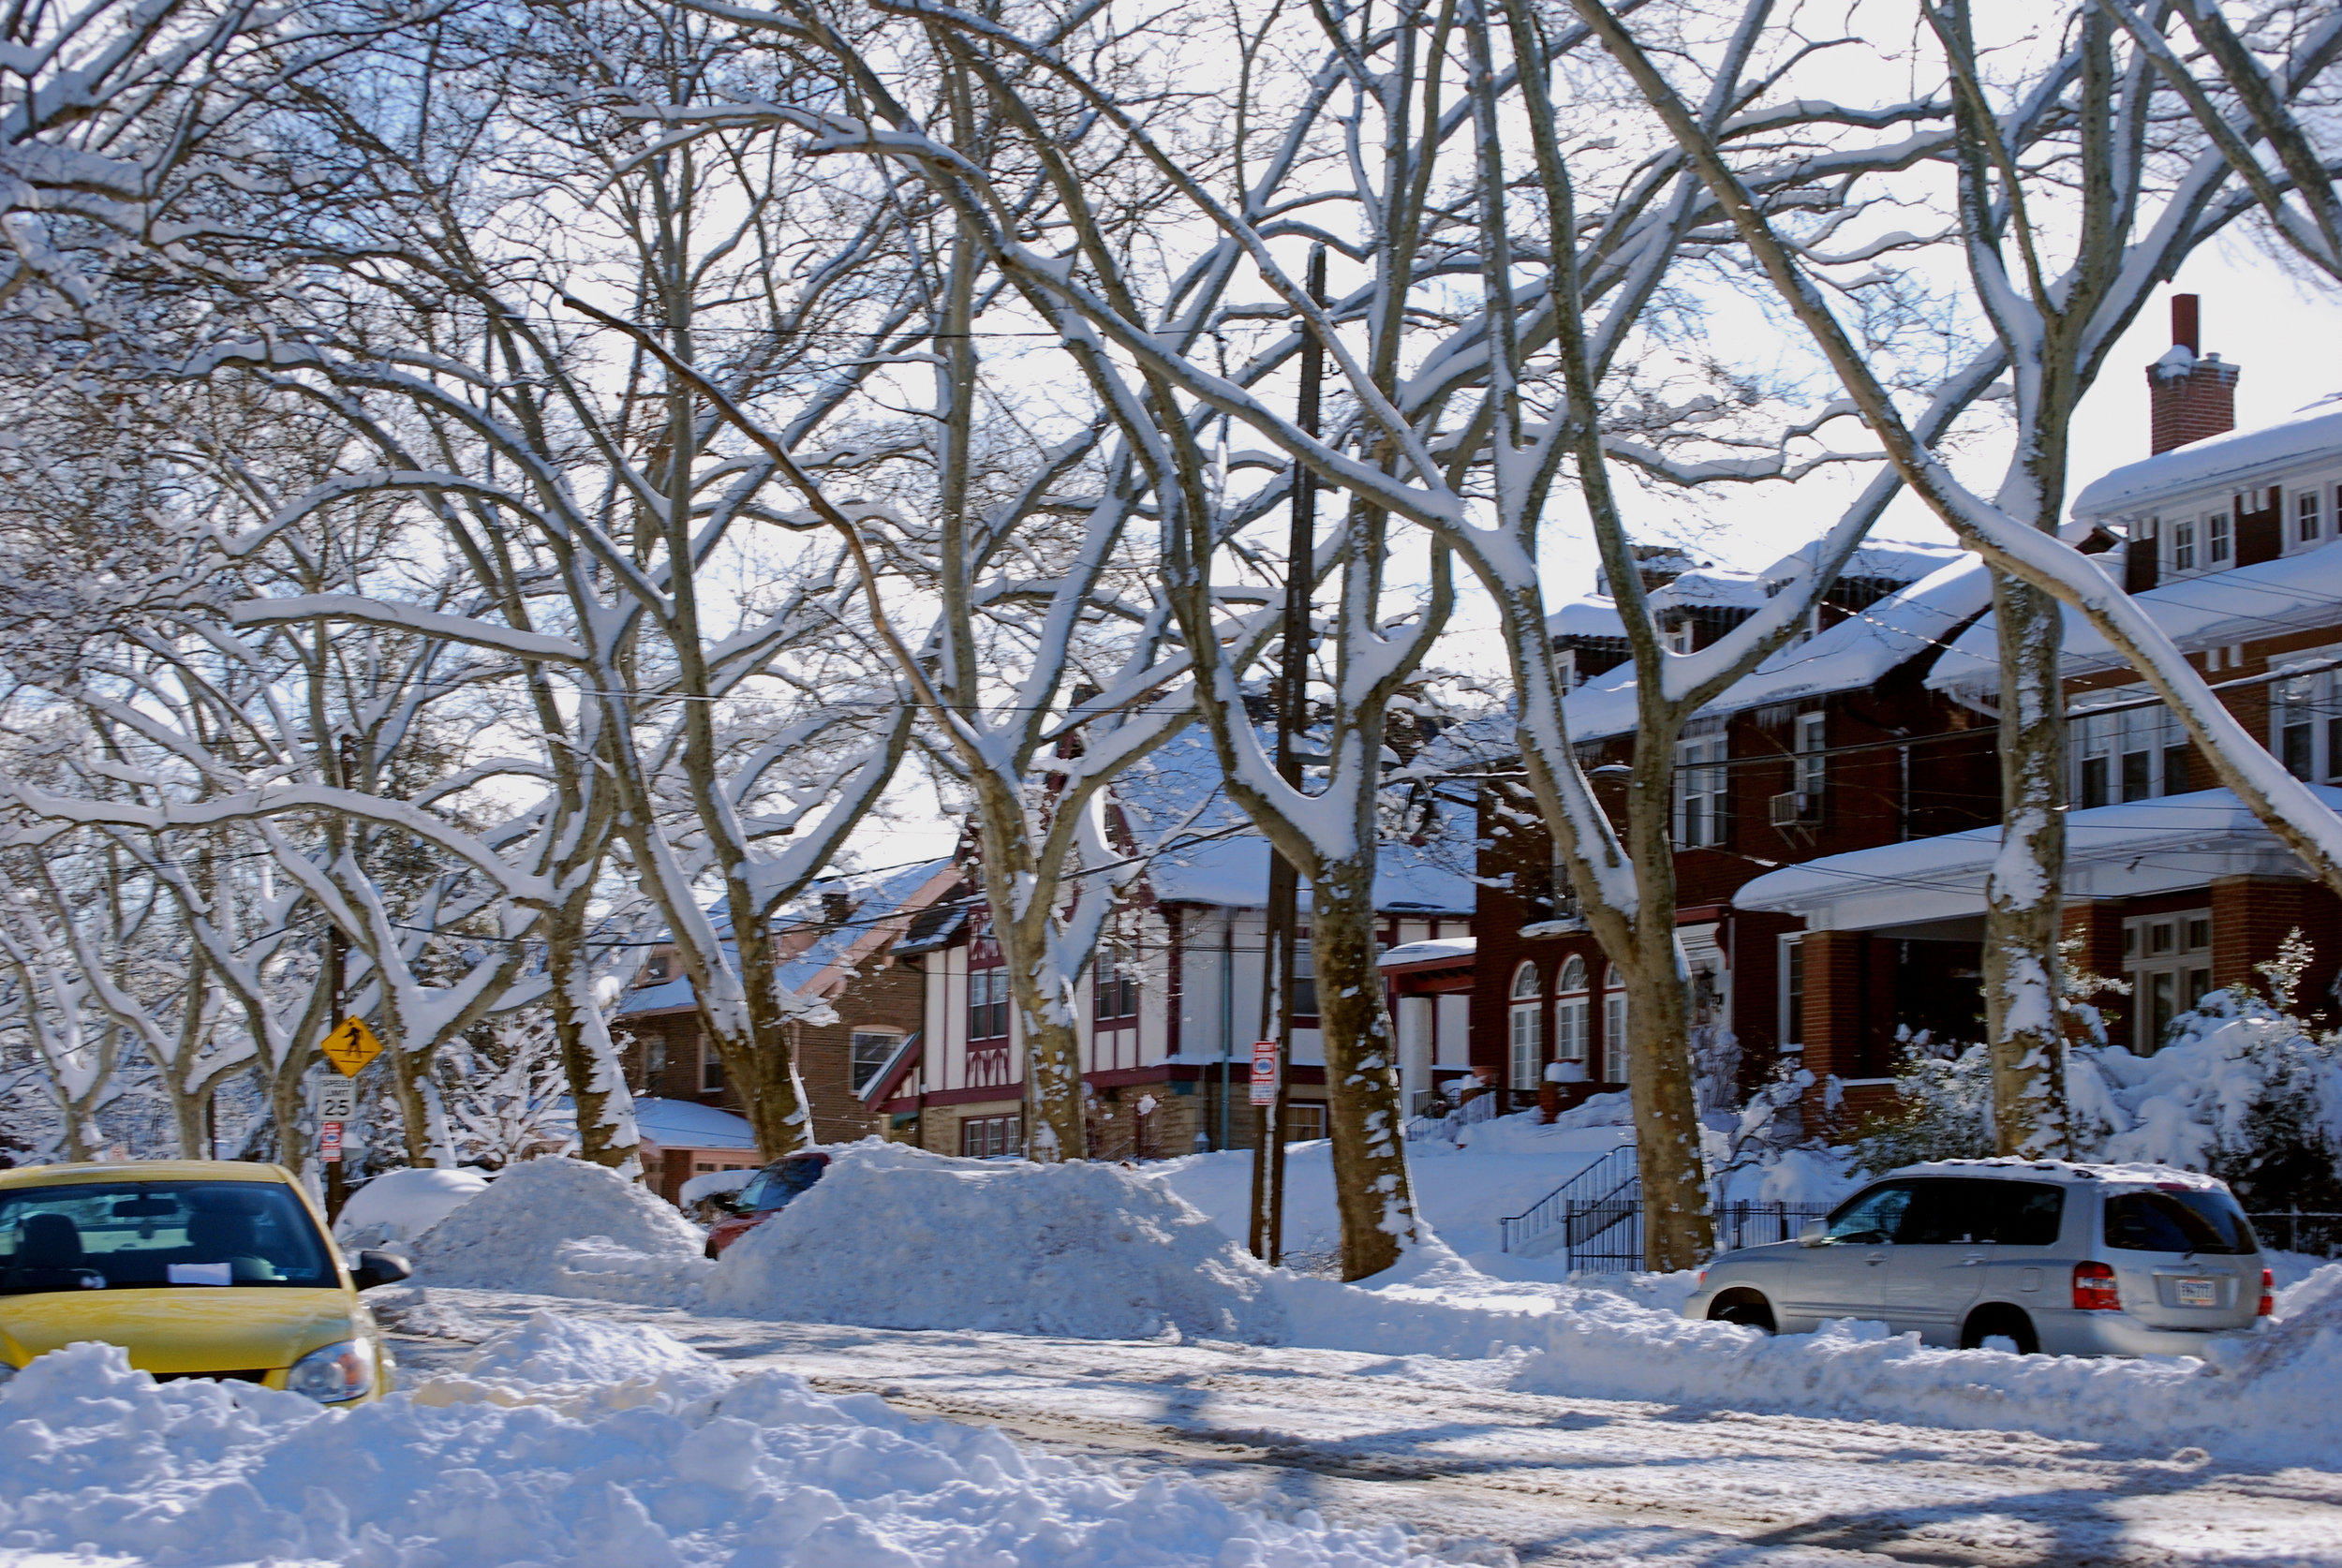 February 8, 2010: Blizzard in Pittsburgh. Photo by Christopher Rice, (CSC_0146) [CC BY-SA 2.0 (https://creativecommons.org/licenses/by-sa/2.0)], via Wikimedia Commons